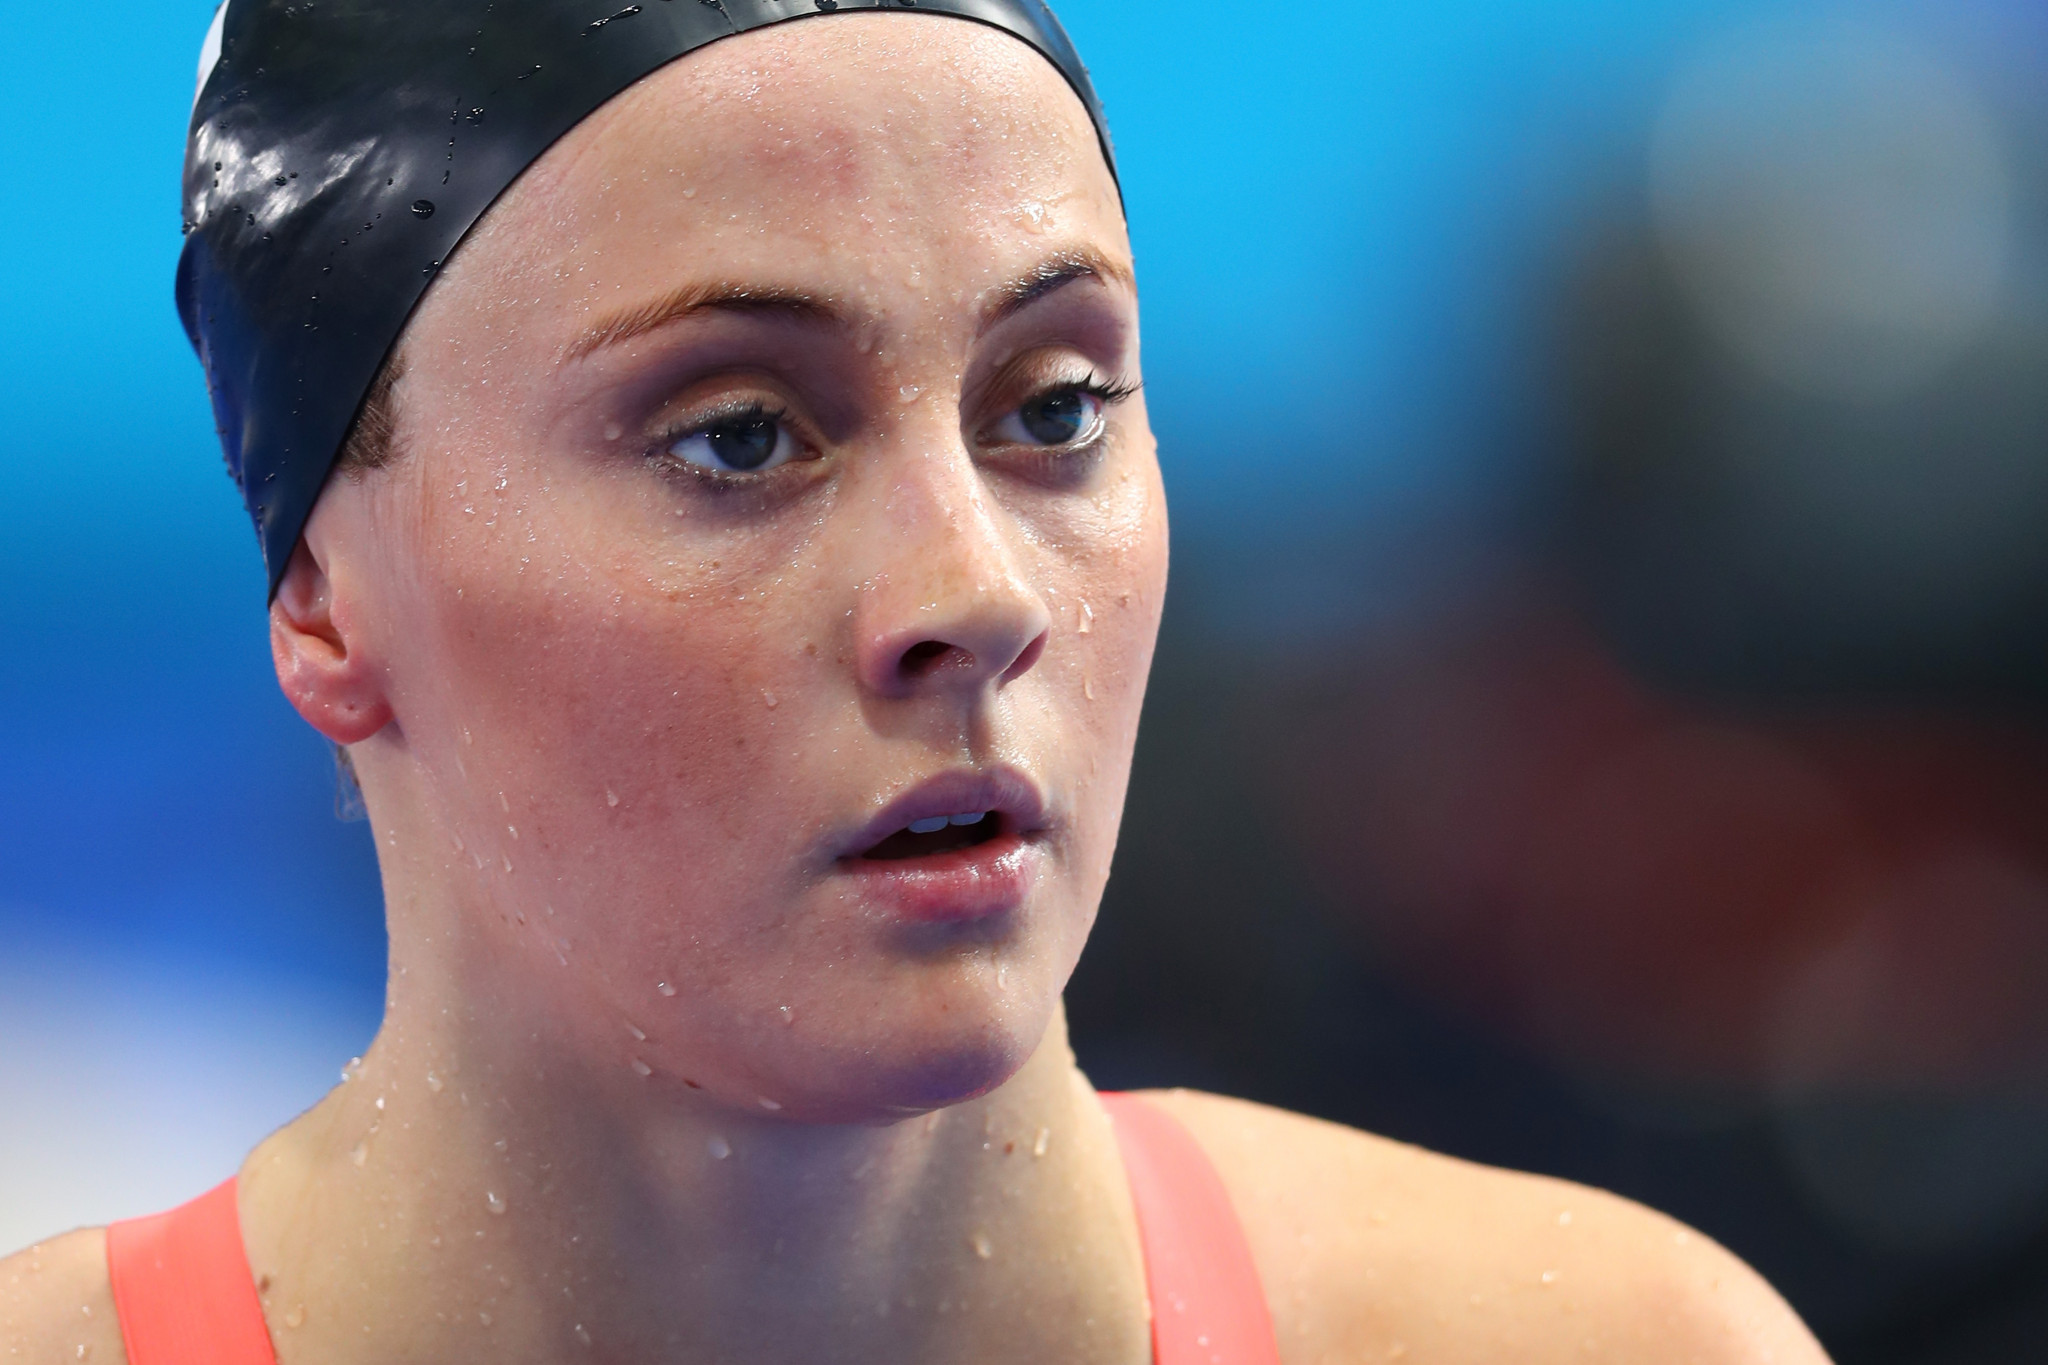 Siobhán-Marie O'Connor, who had a very successful Games in Glasgow in 2014, is another member of the Team England squad for Gold Coast 2018  ©Getty Images